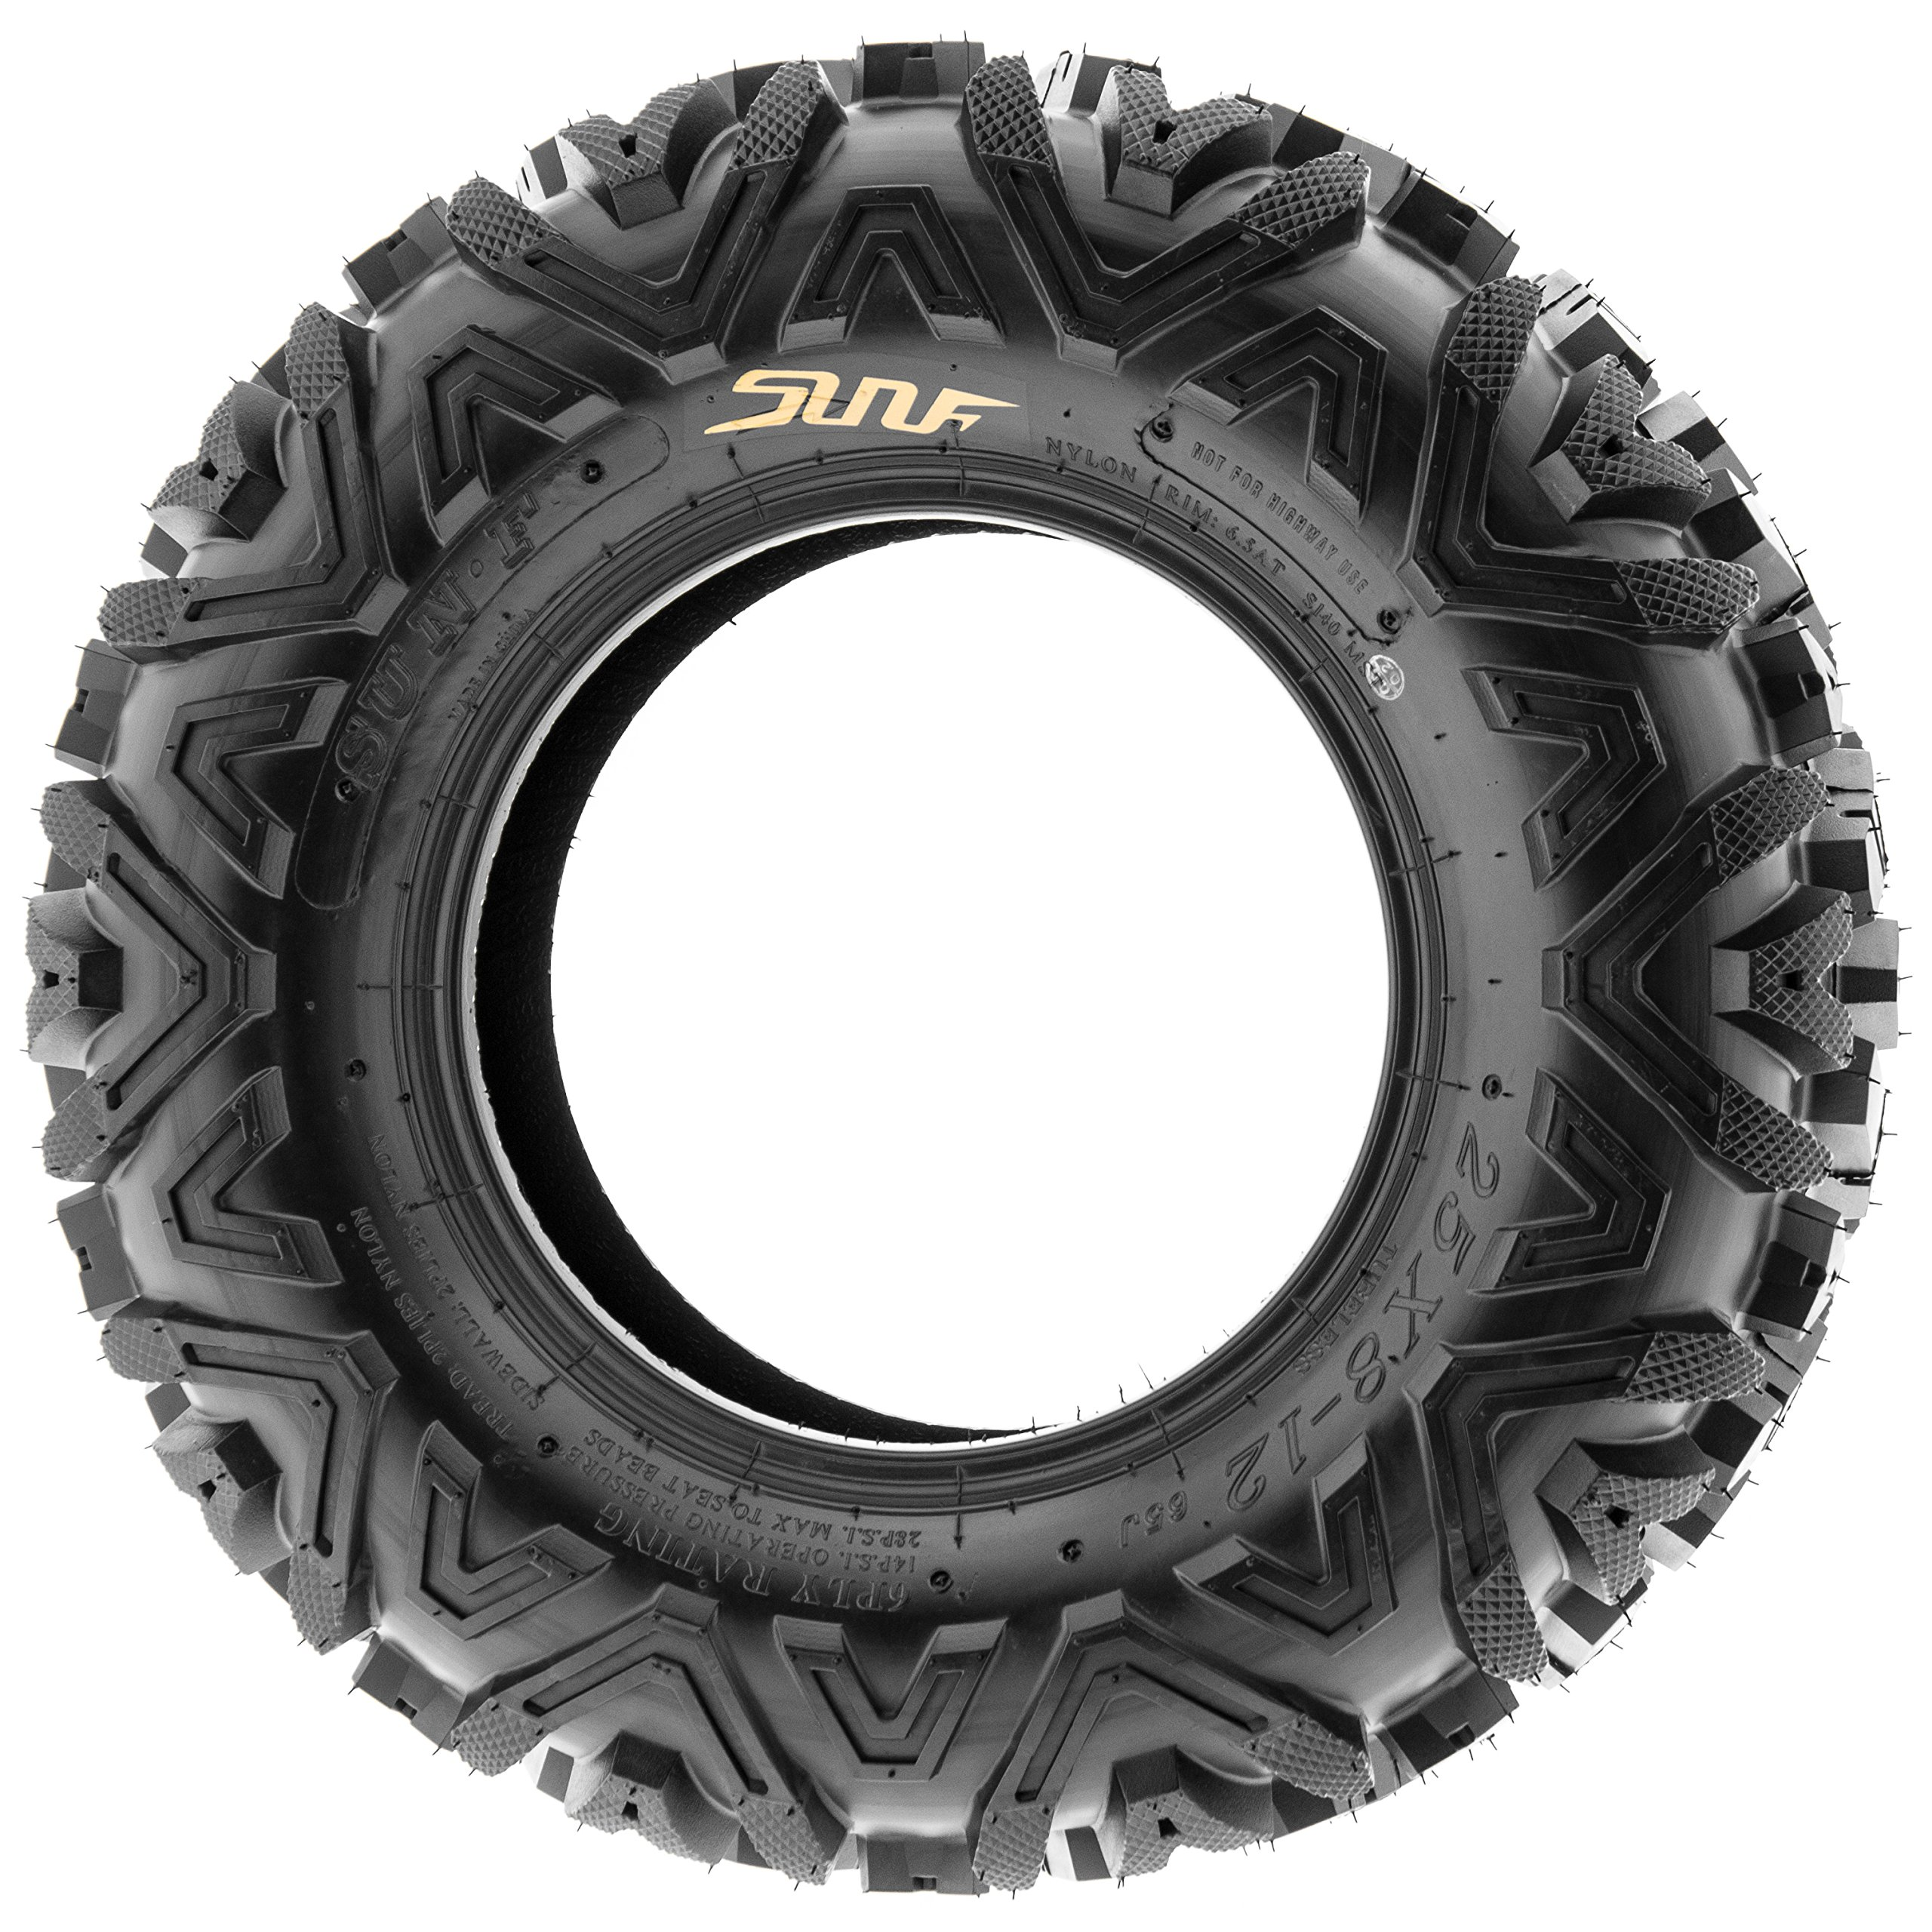 SunF 29x9-14 29x9x14 ATV UTV All Terrain AT Tire 6 PR A033 (Single) by SunF (Image #6)